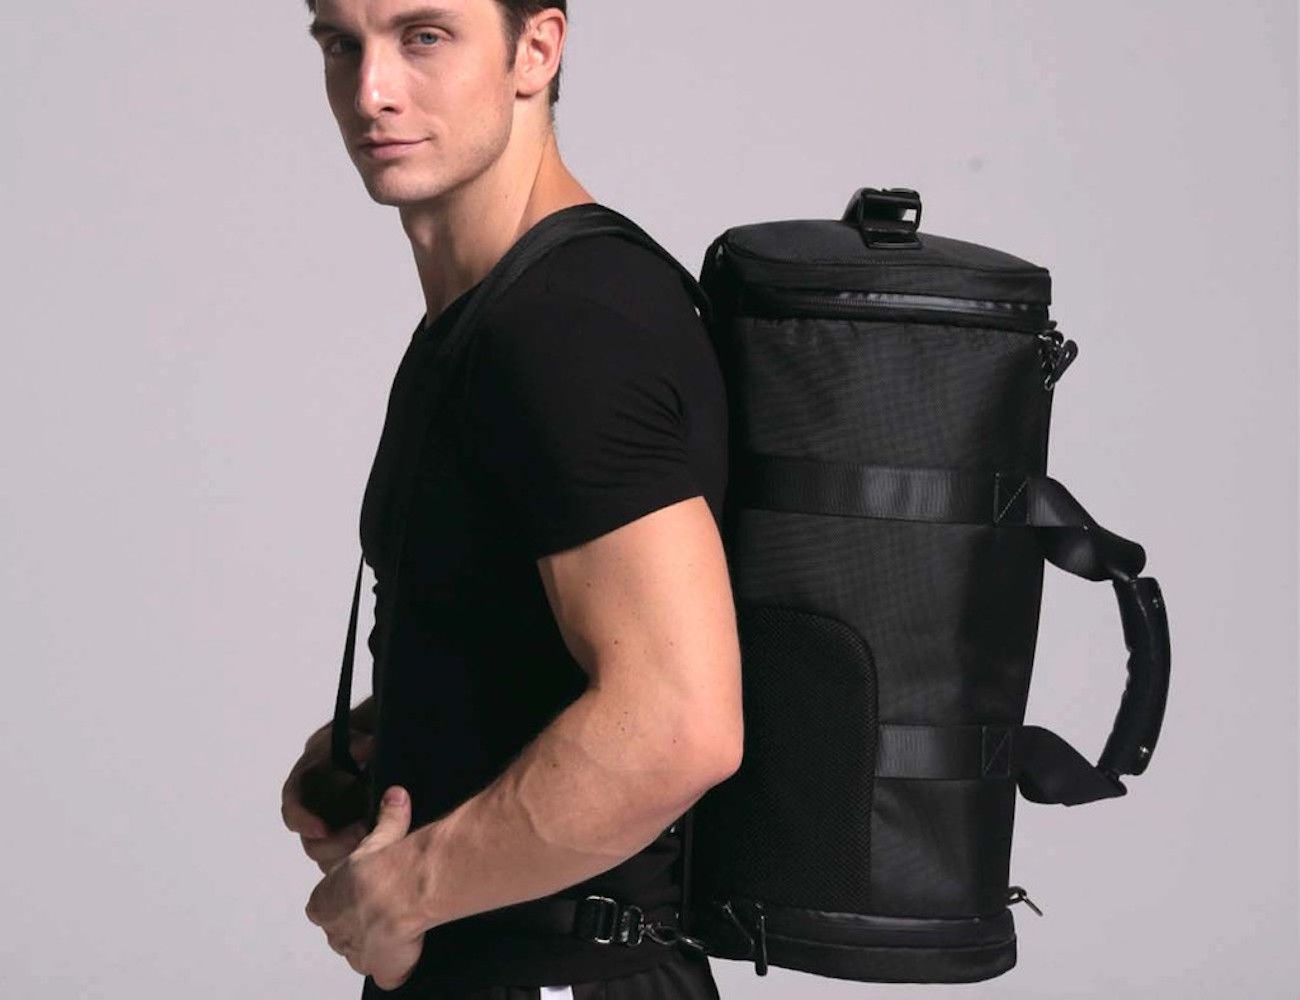 Breether – Duffle Bag Designed To Breathe and Stay Cool